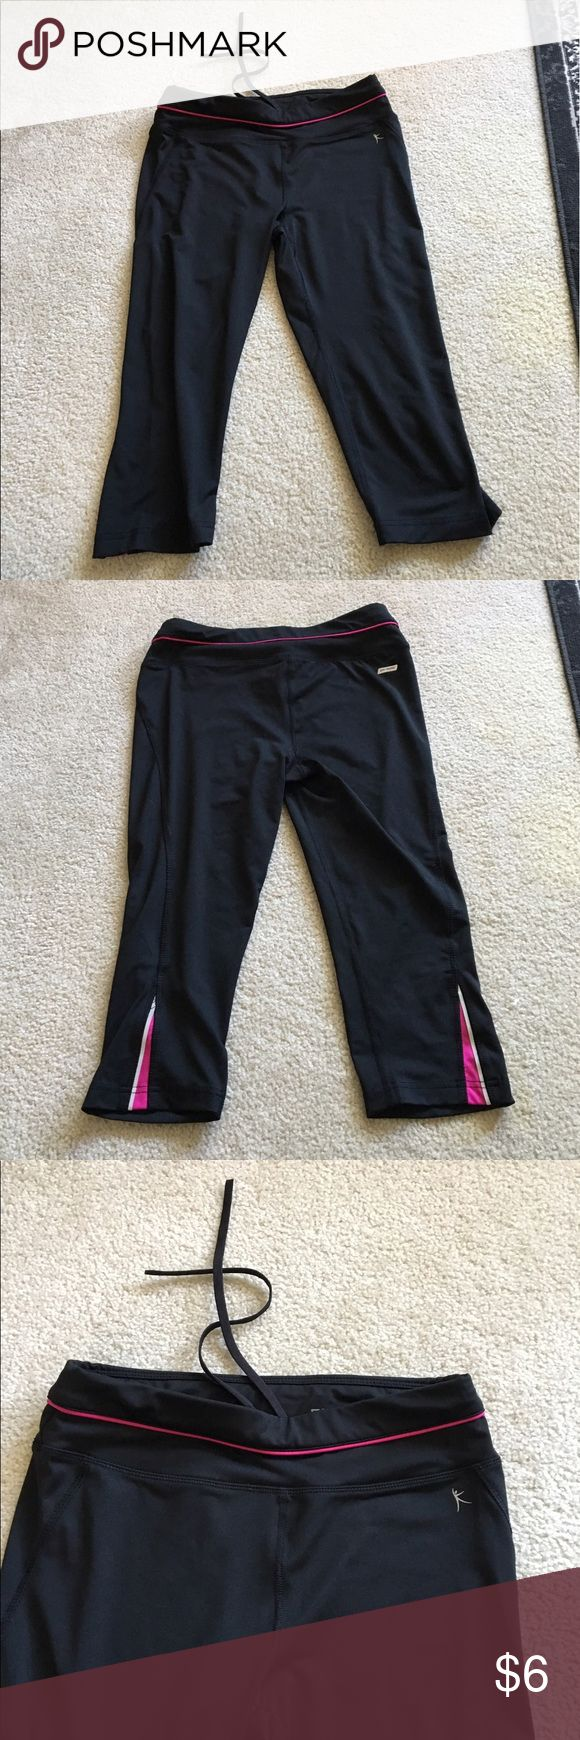 Danskin cropped leggings, S Cropped gym leggings by Danskin, size S. Features draw string inside the waist band and pink/silver reflective panels on the calf. Very good condition; comfortable, and flattering. Danskin Now Pants Ankle & Cropped